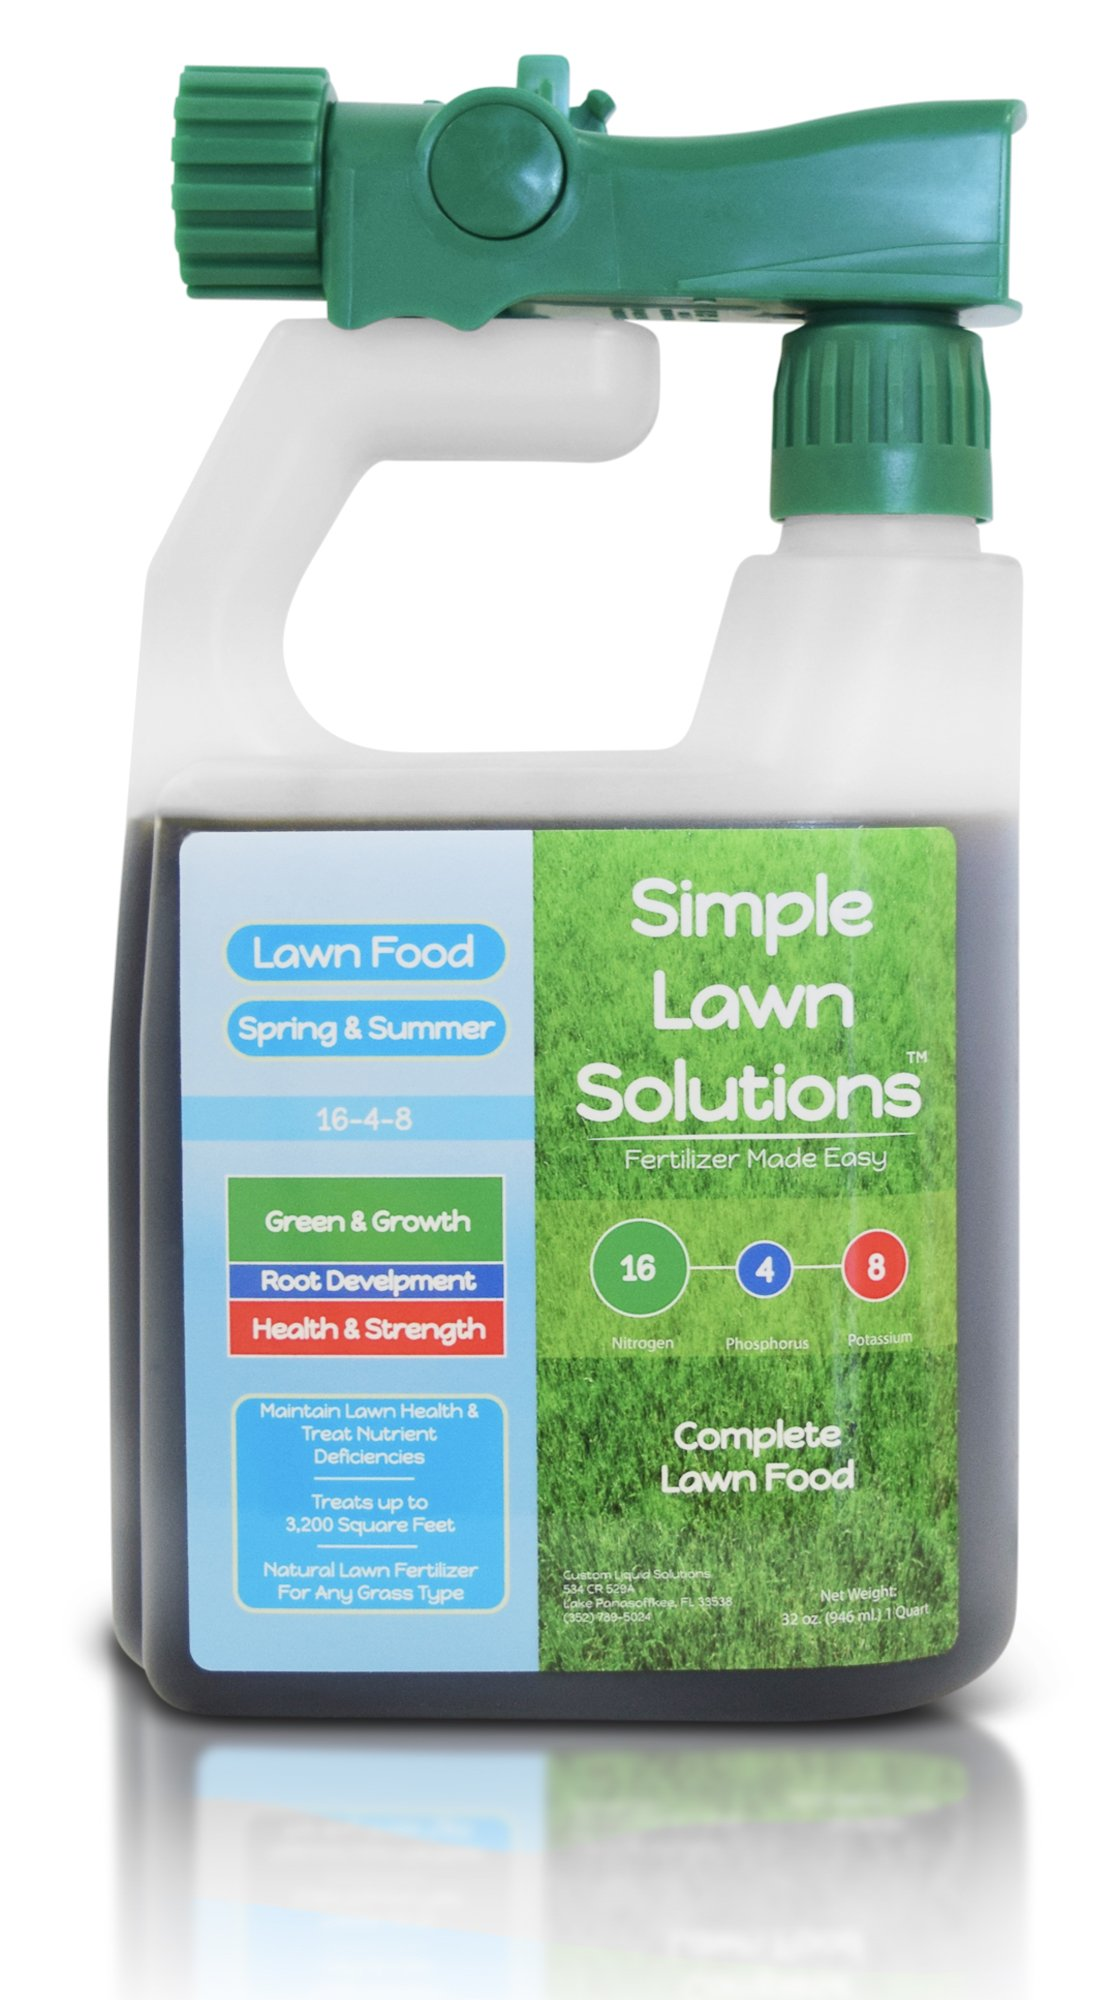 Advanced 16-4-8 Balanced NPK - Lawn Food Natural Liquid Fertilizer - Spring & Summer Concentrated Spray - Any Grass Type - Simple Lawn Solutions (32 Ounce) by Simple Lawn Solutions